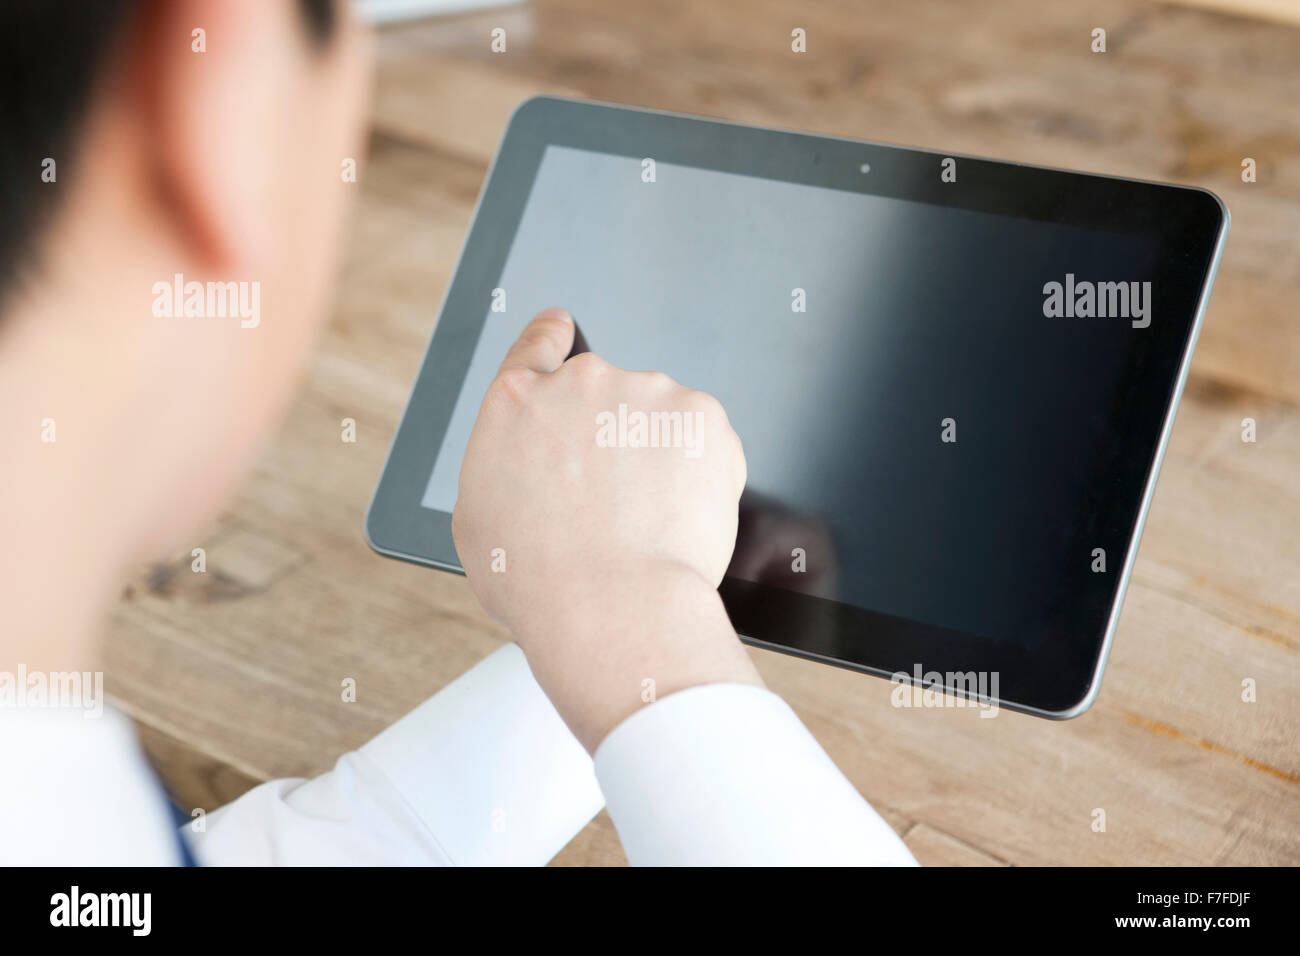 Un homme touchant un PC de table Photo Stock